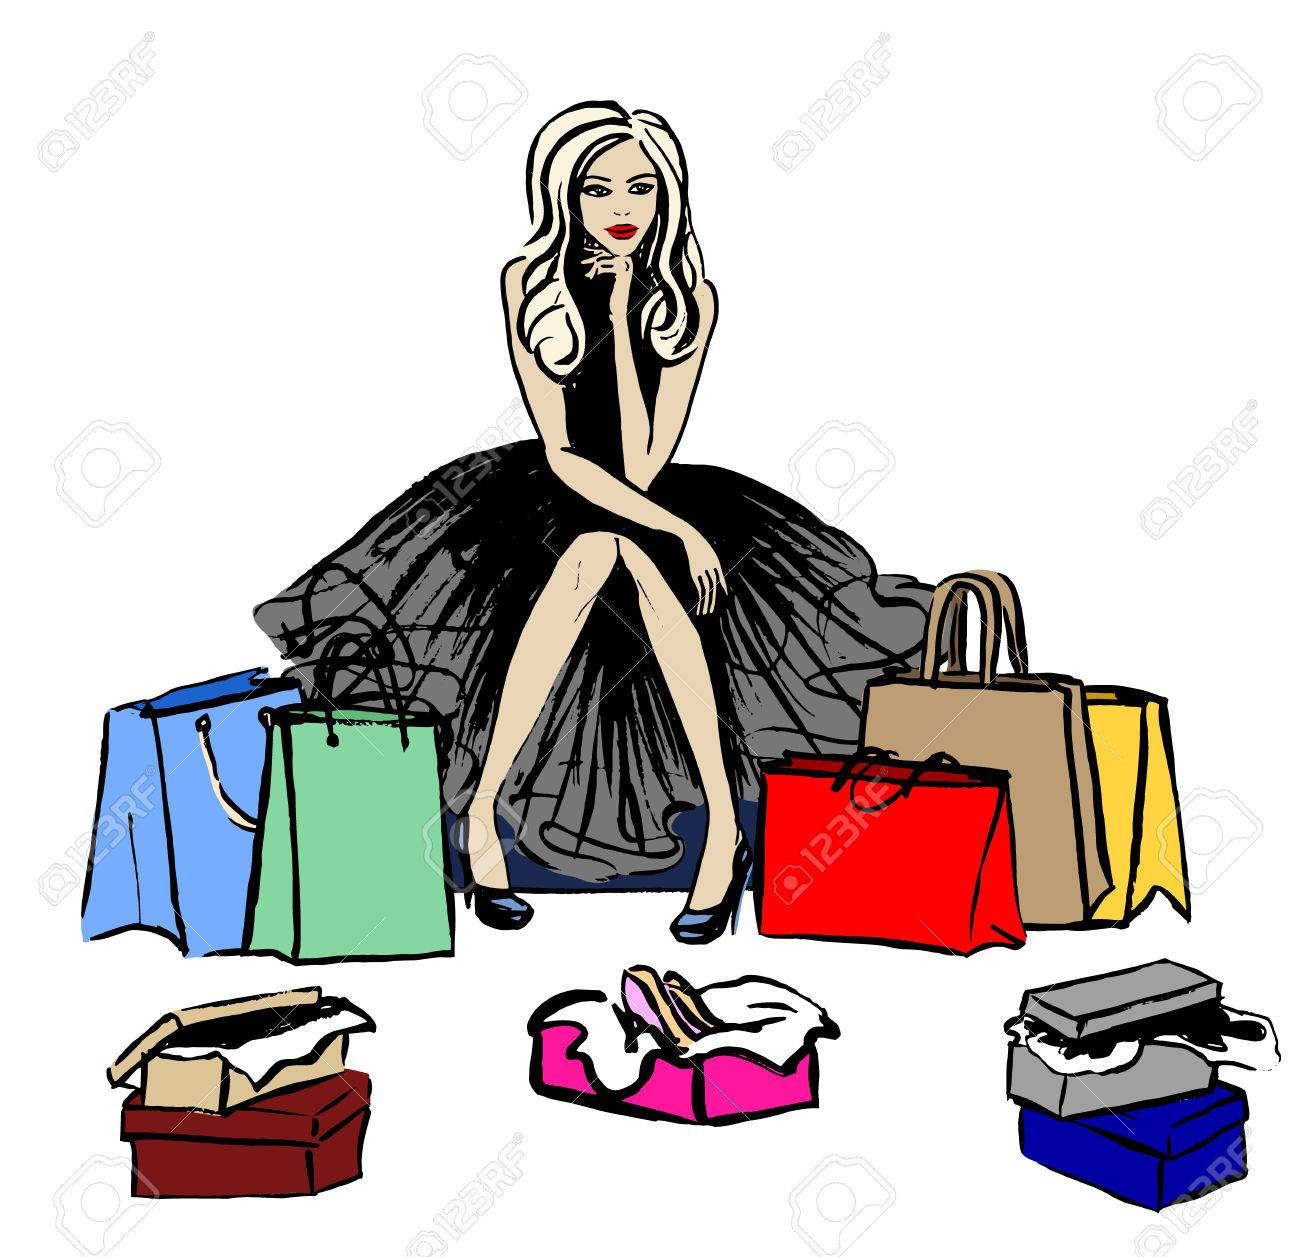 Fashion Illustration Of Woman Thinking In Shop With Shopping